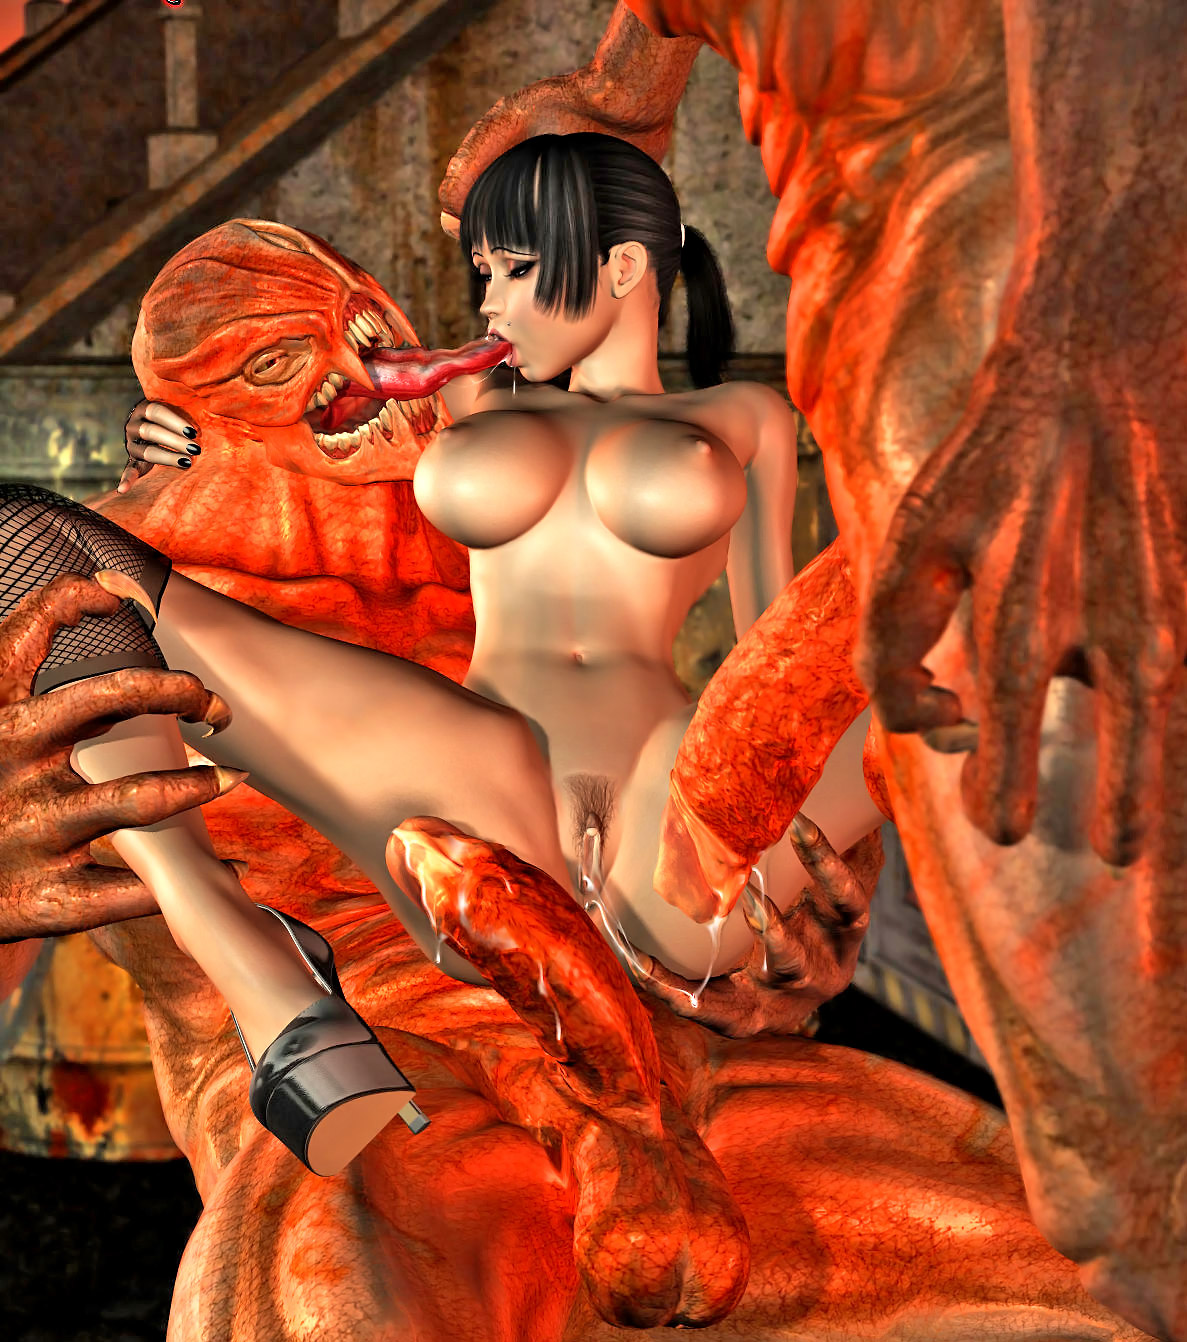 Wallpaper demon nude 3d naked comics